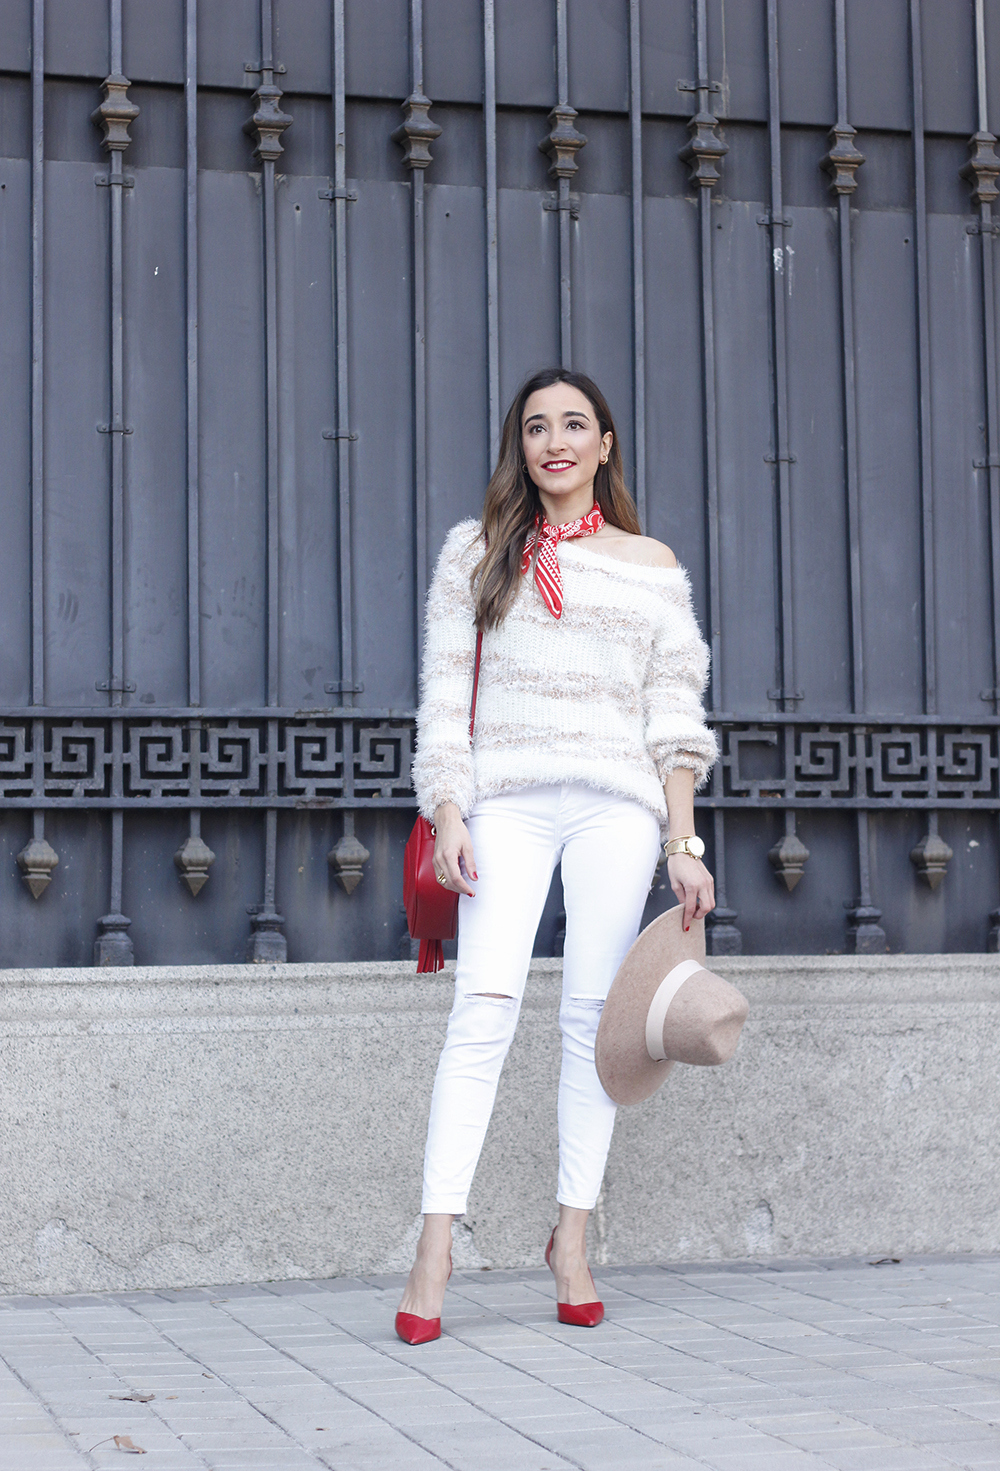 white outfit touch of red gucci bag primark hat winter outfit 201804